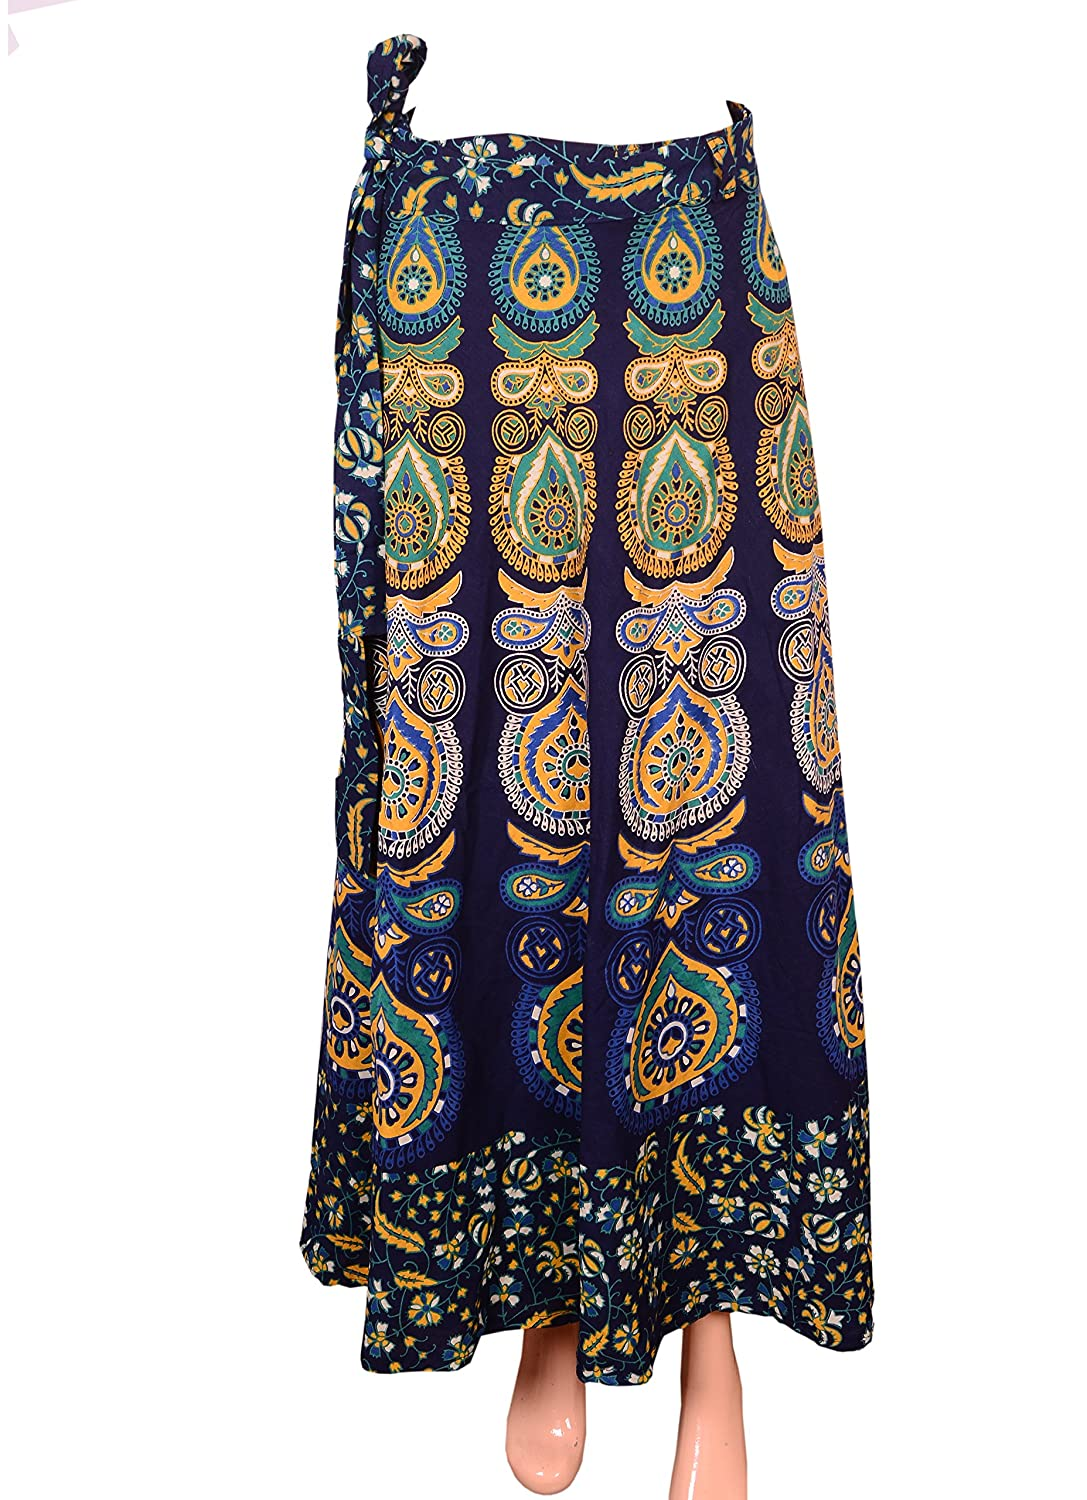 9056d4cbc Cotton Skirts From India – DACC